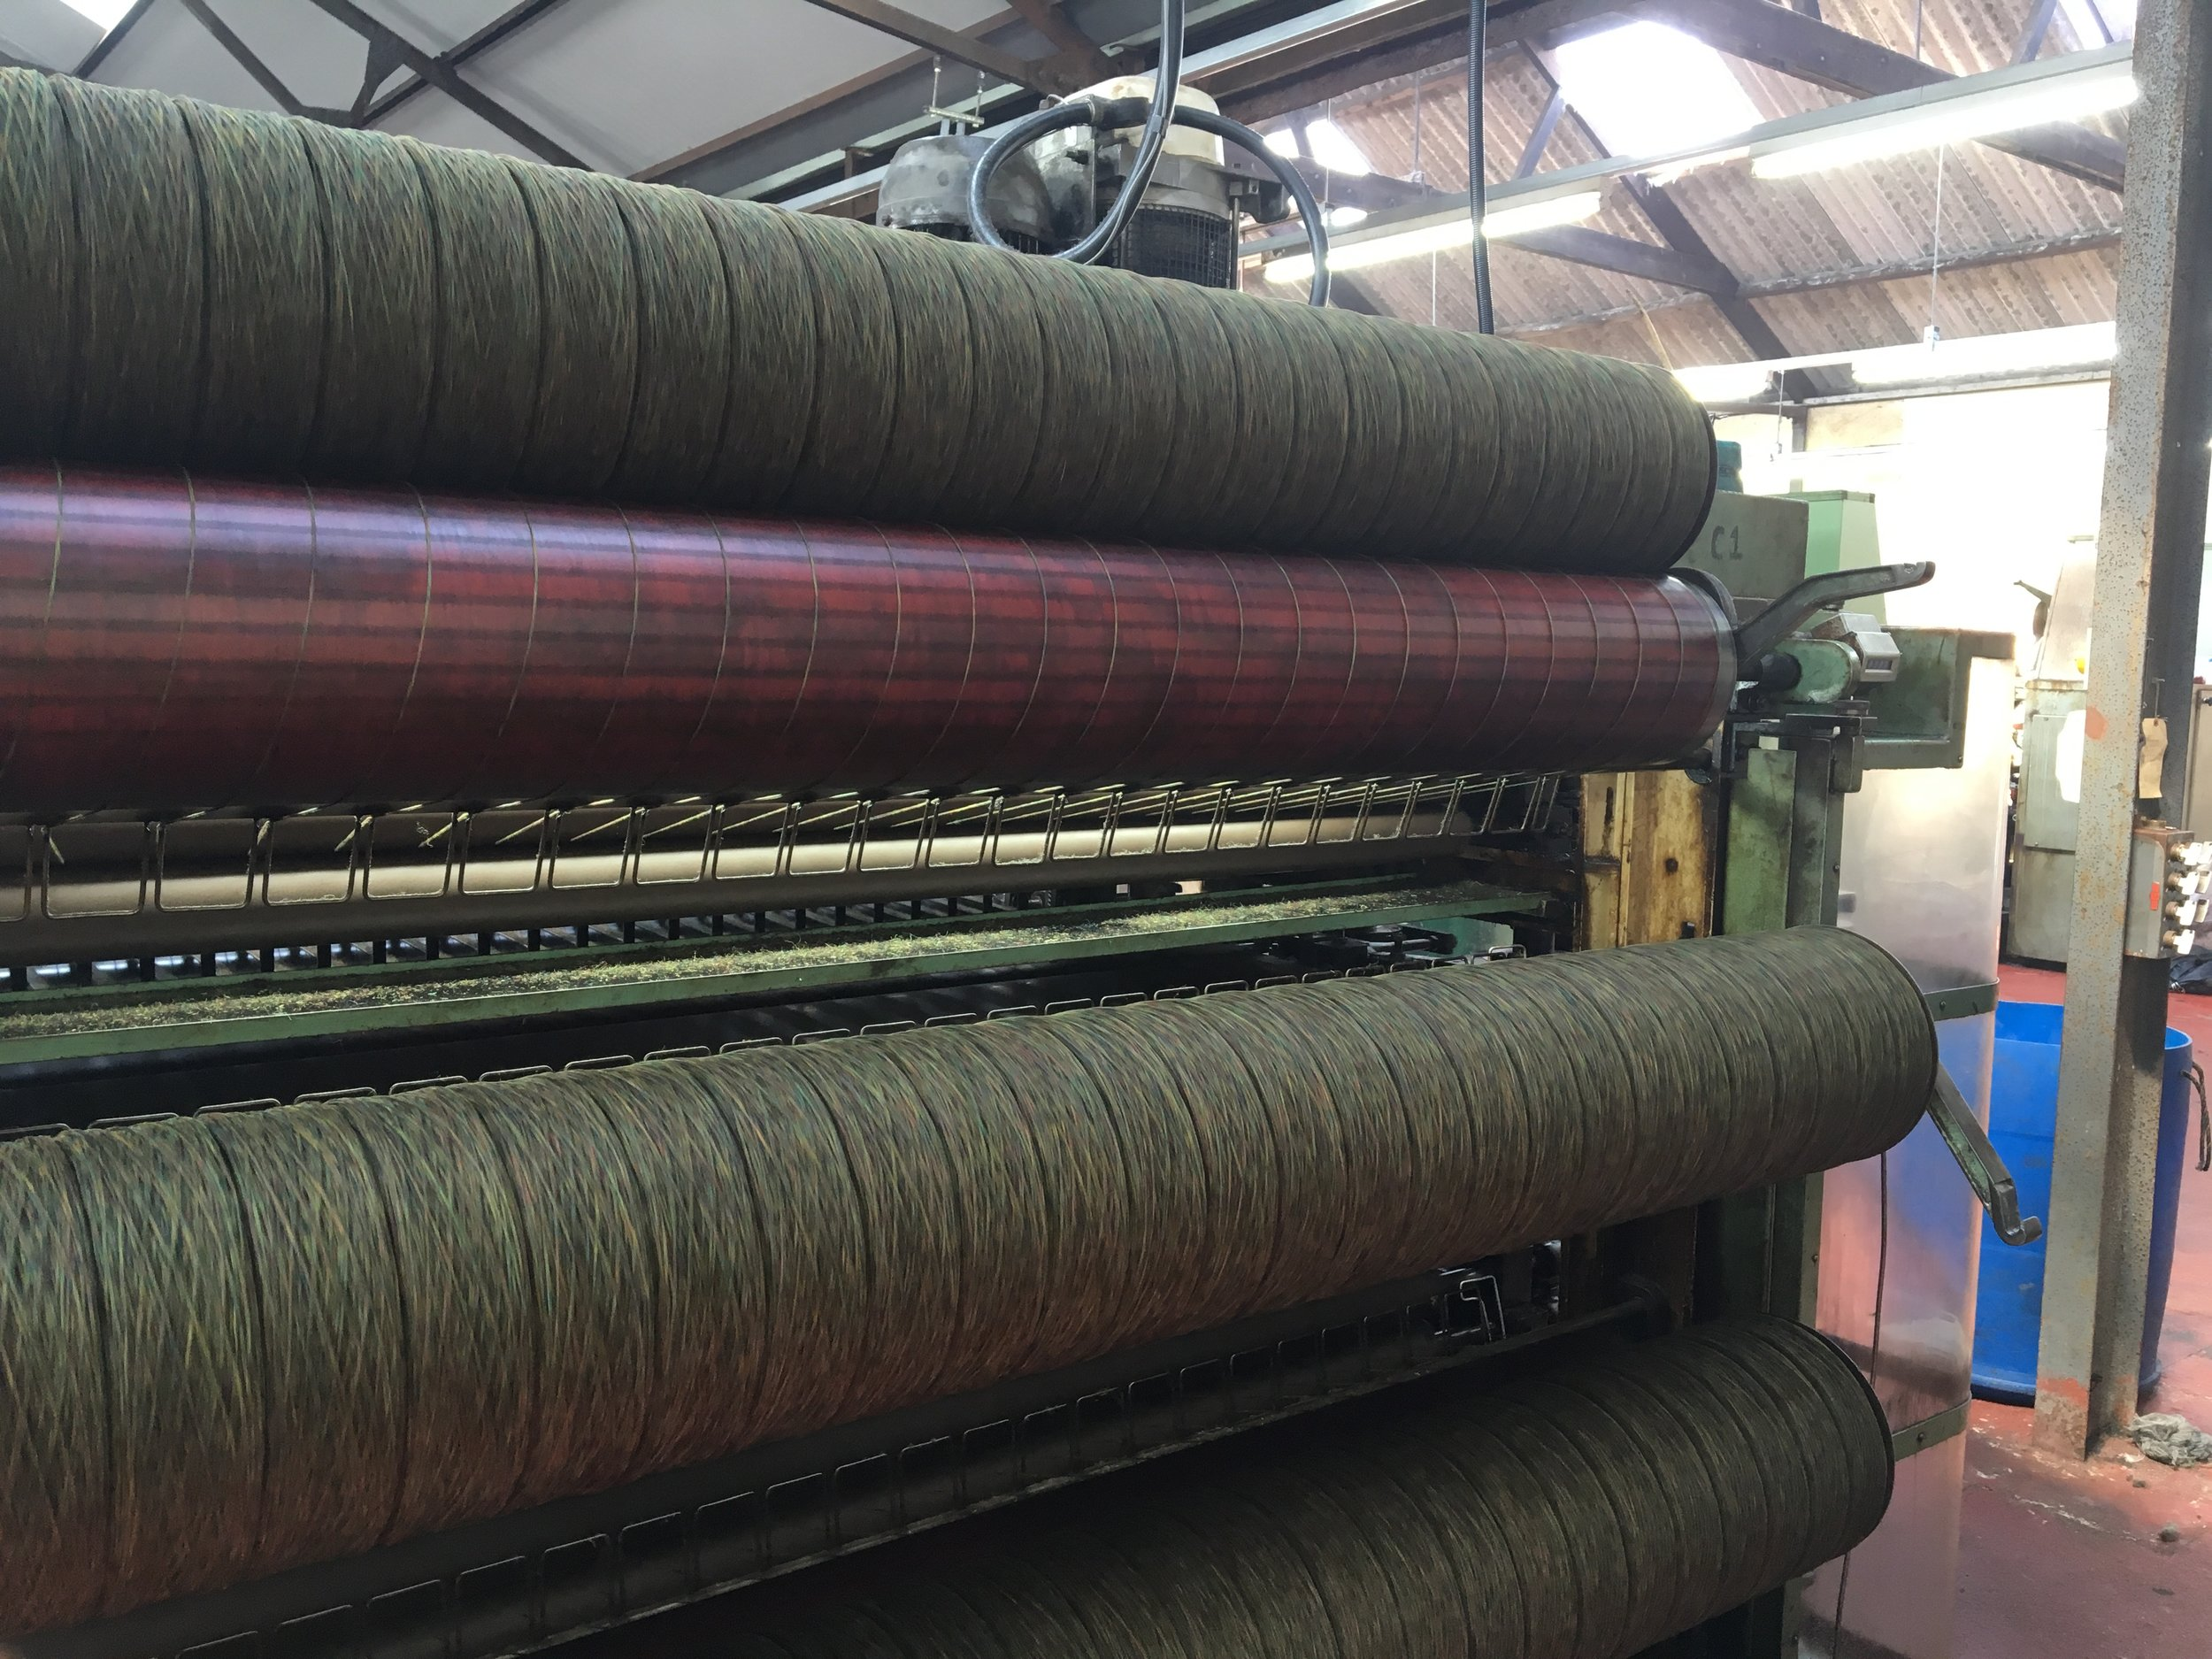 A machine at Kenneth Mackenzie on the Isle of Lewis in Scotland, depicting part of the process used to turn the wool fibers into fabric that will last a lifetime